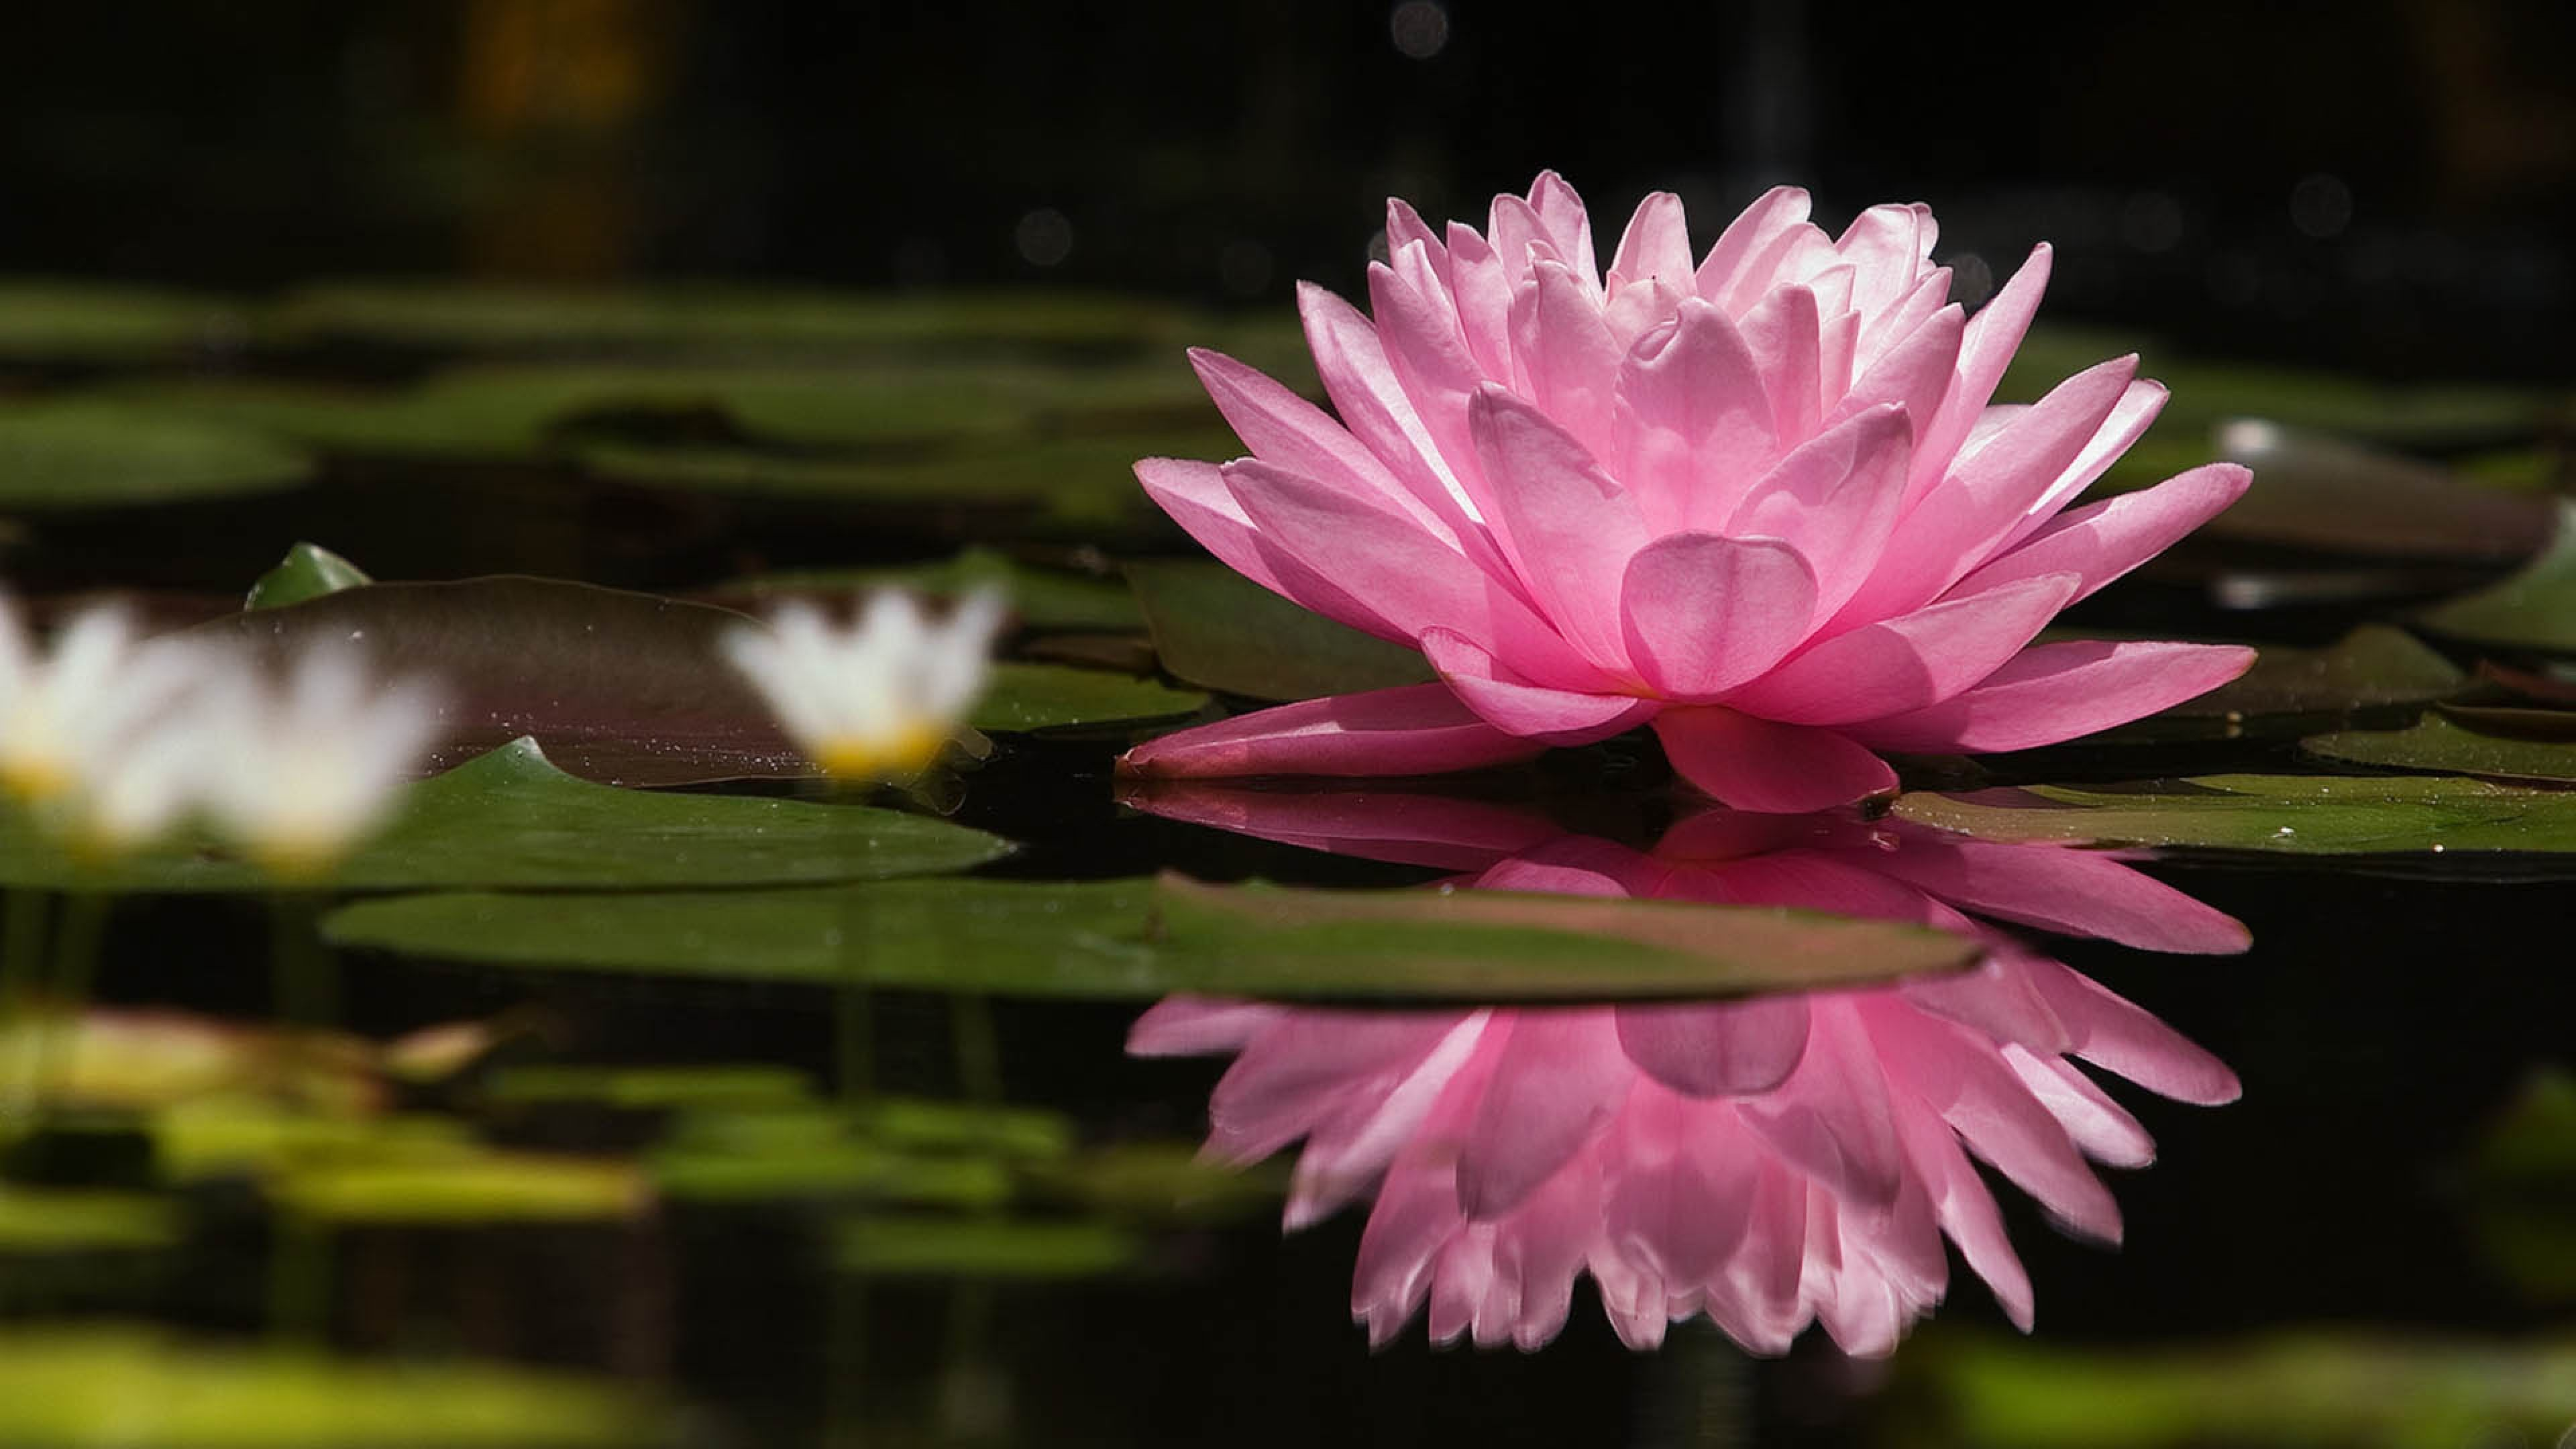 hd pic of lotus flower